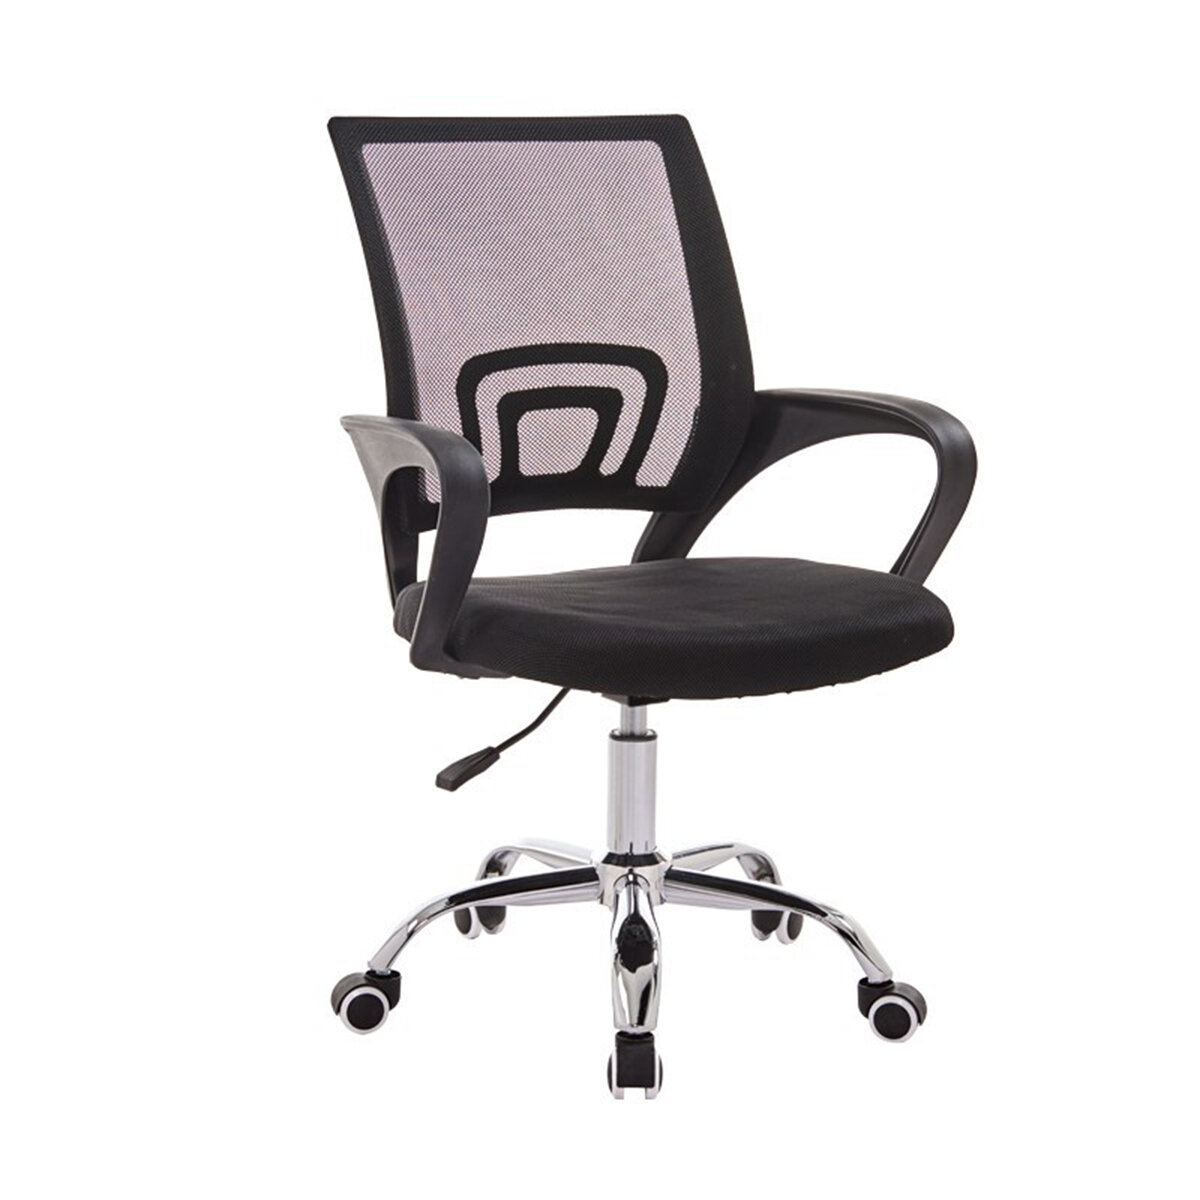 Ergonomic Office Chair Laptop Desk Chair Mesh Executive Computer Chair With Lumbar Support